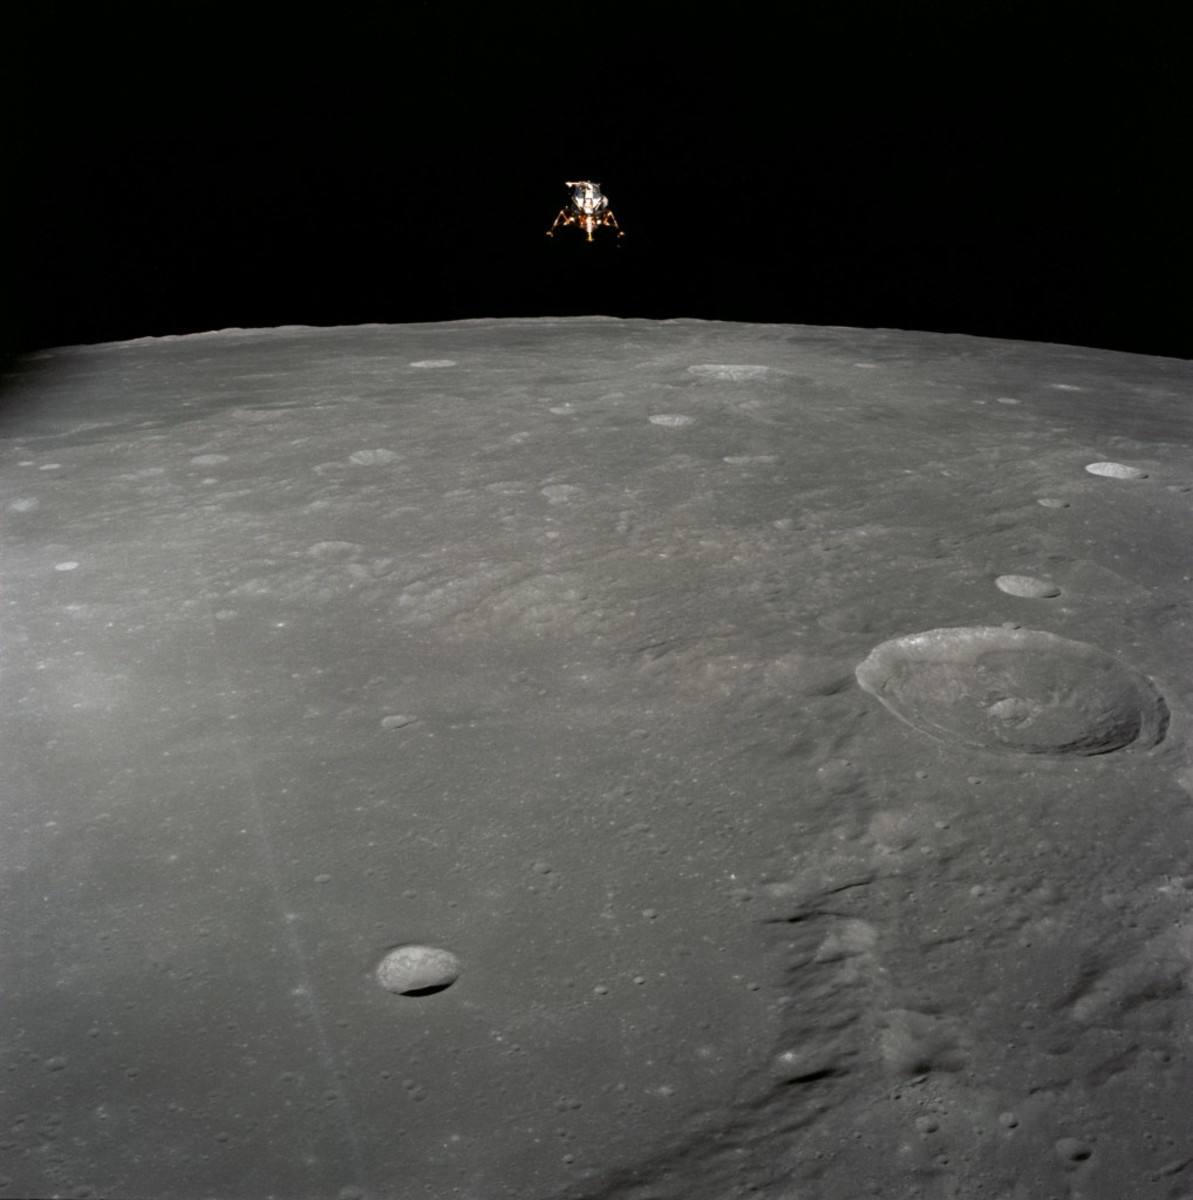 unsolved-mysteries-of-moon-observations-and-transient-lunar-phenomena